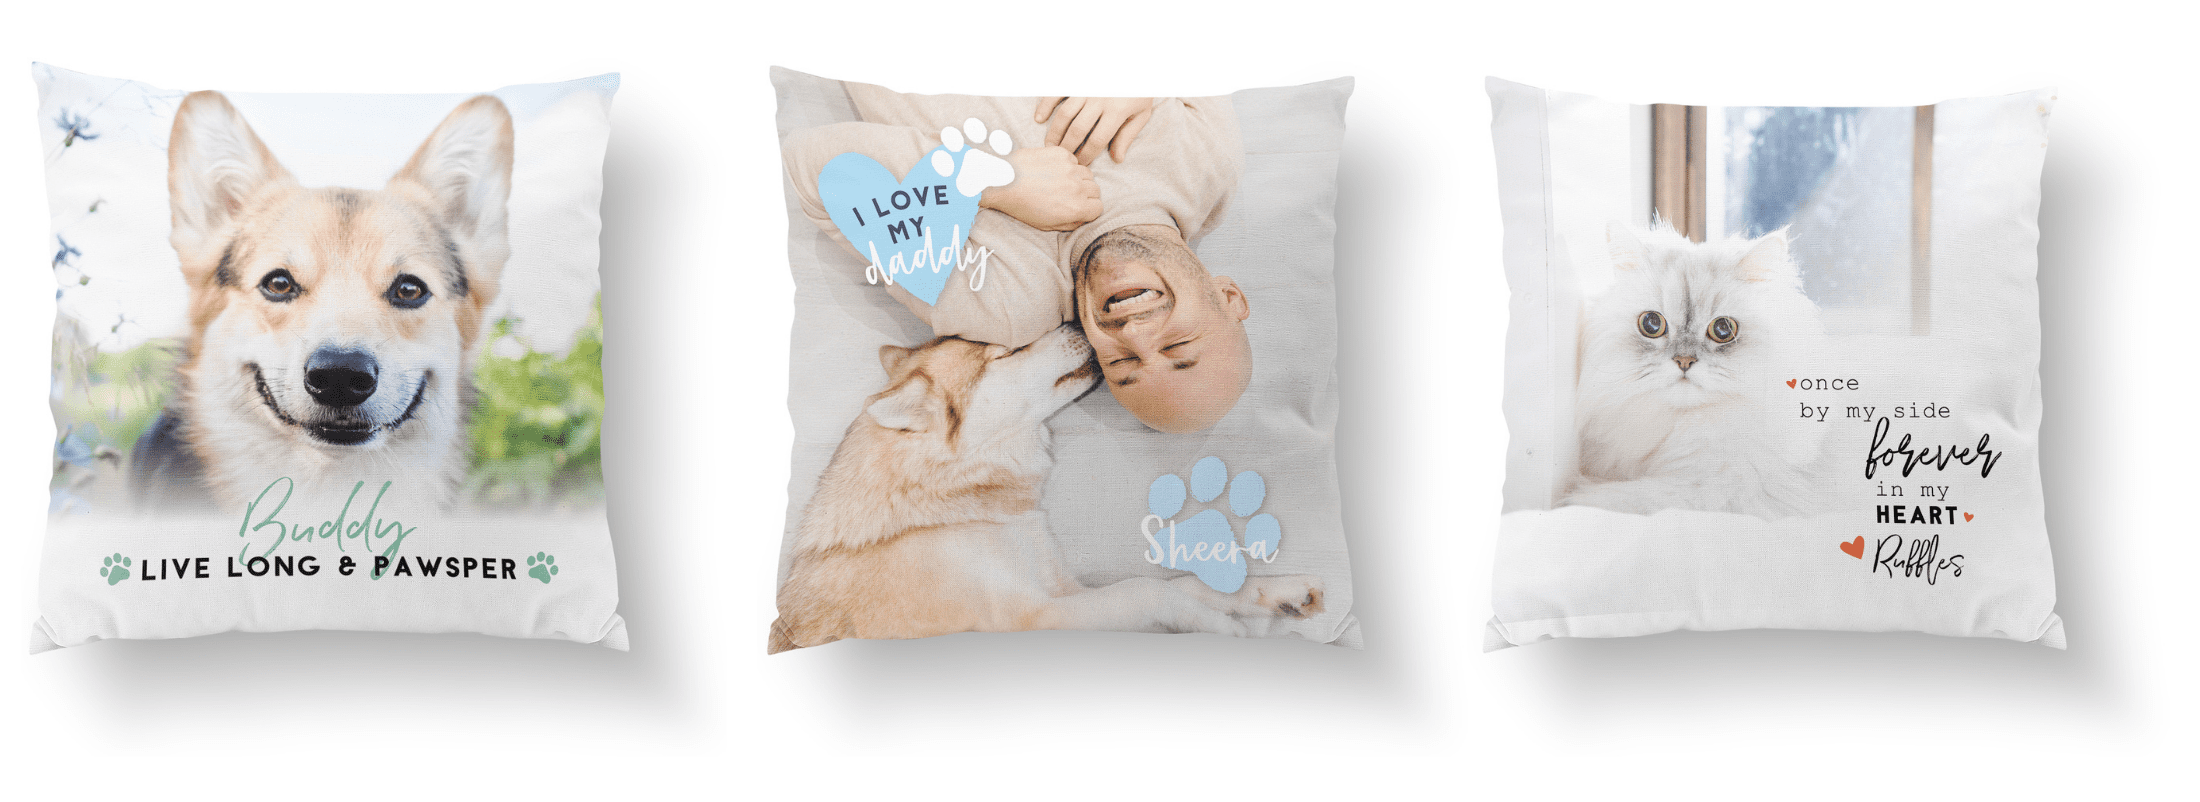 photo pillow gifts with your pets photos